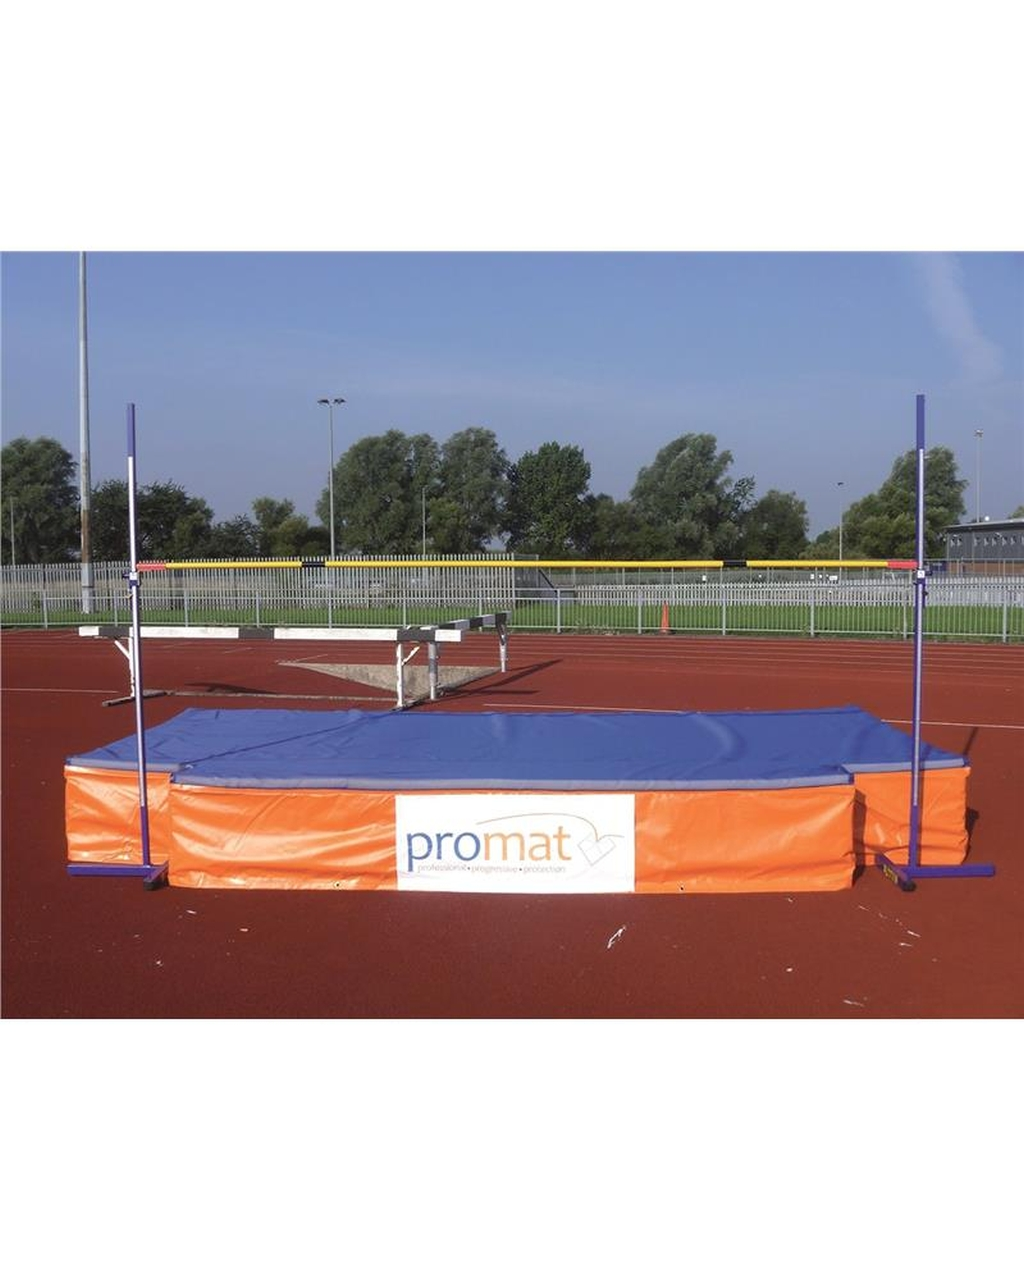 PROMAT SCHOOL HIGH JUMP PRO 3 MODULES 5M X 2.5M X 560MM WITH SPIKE WEAR SHEET